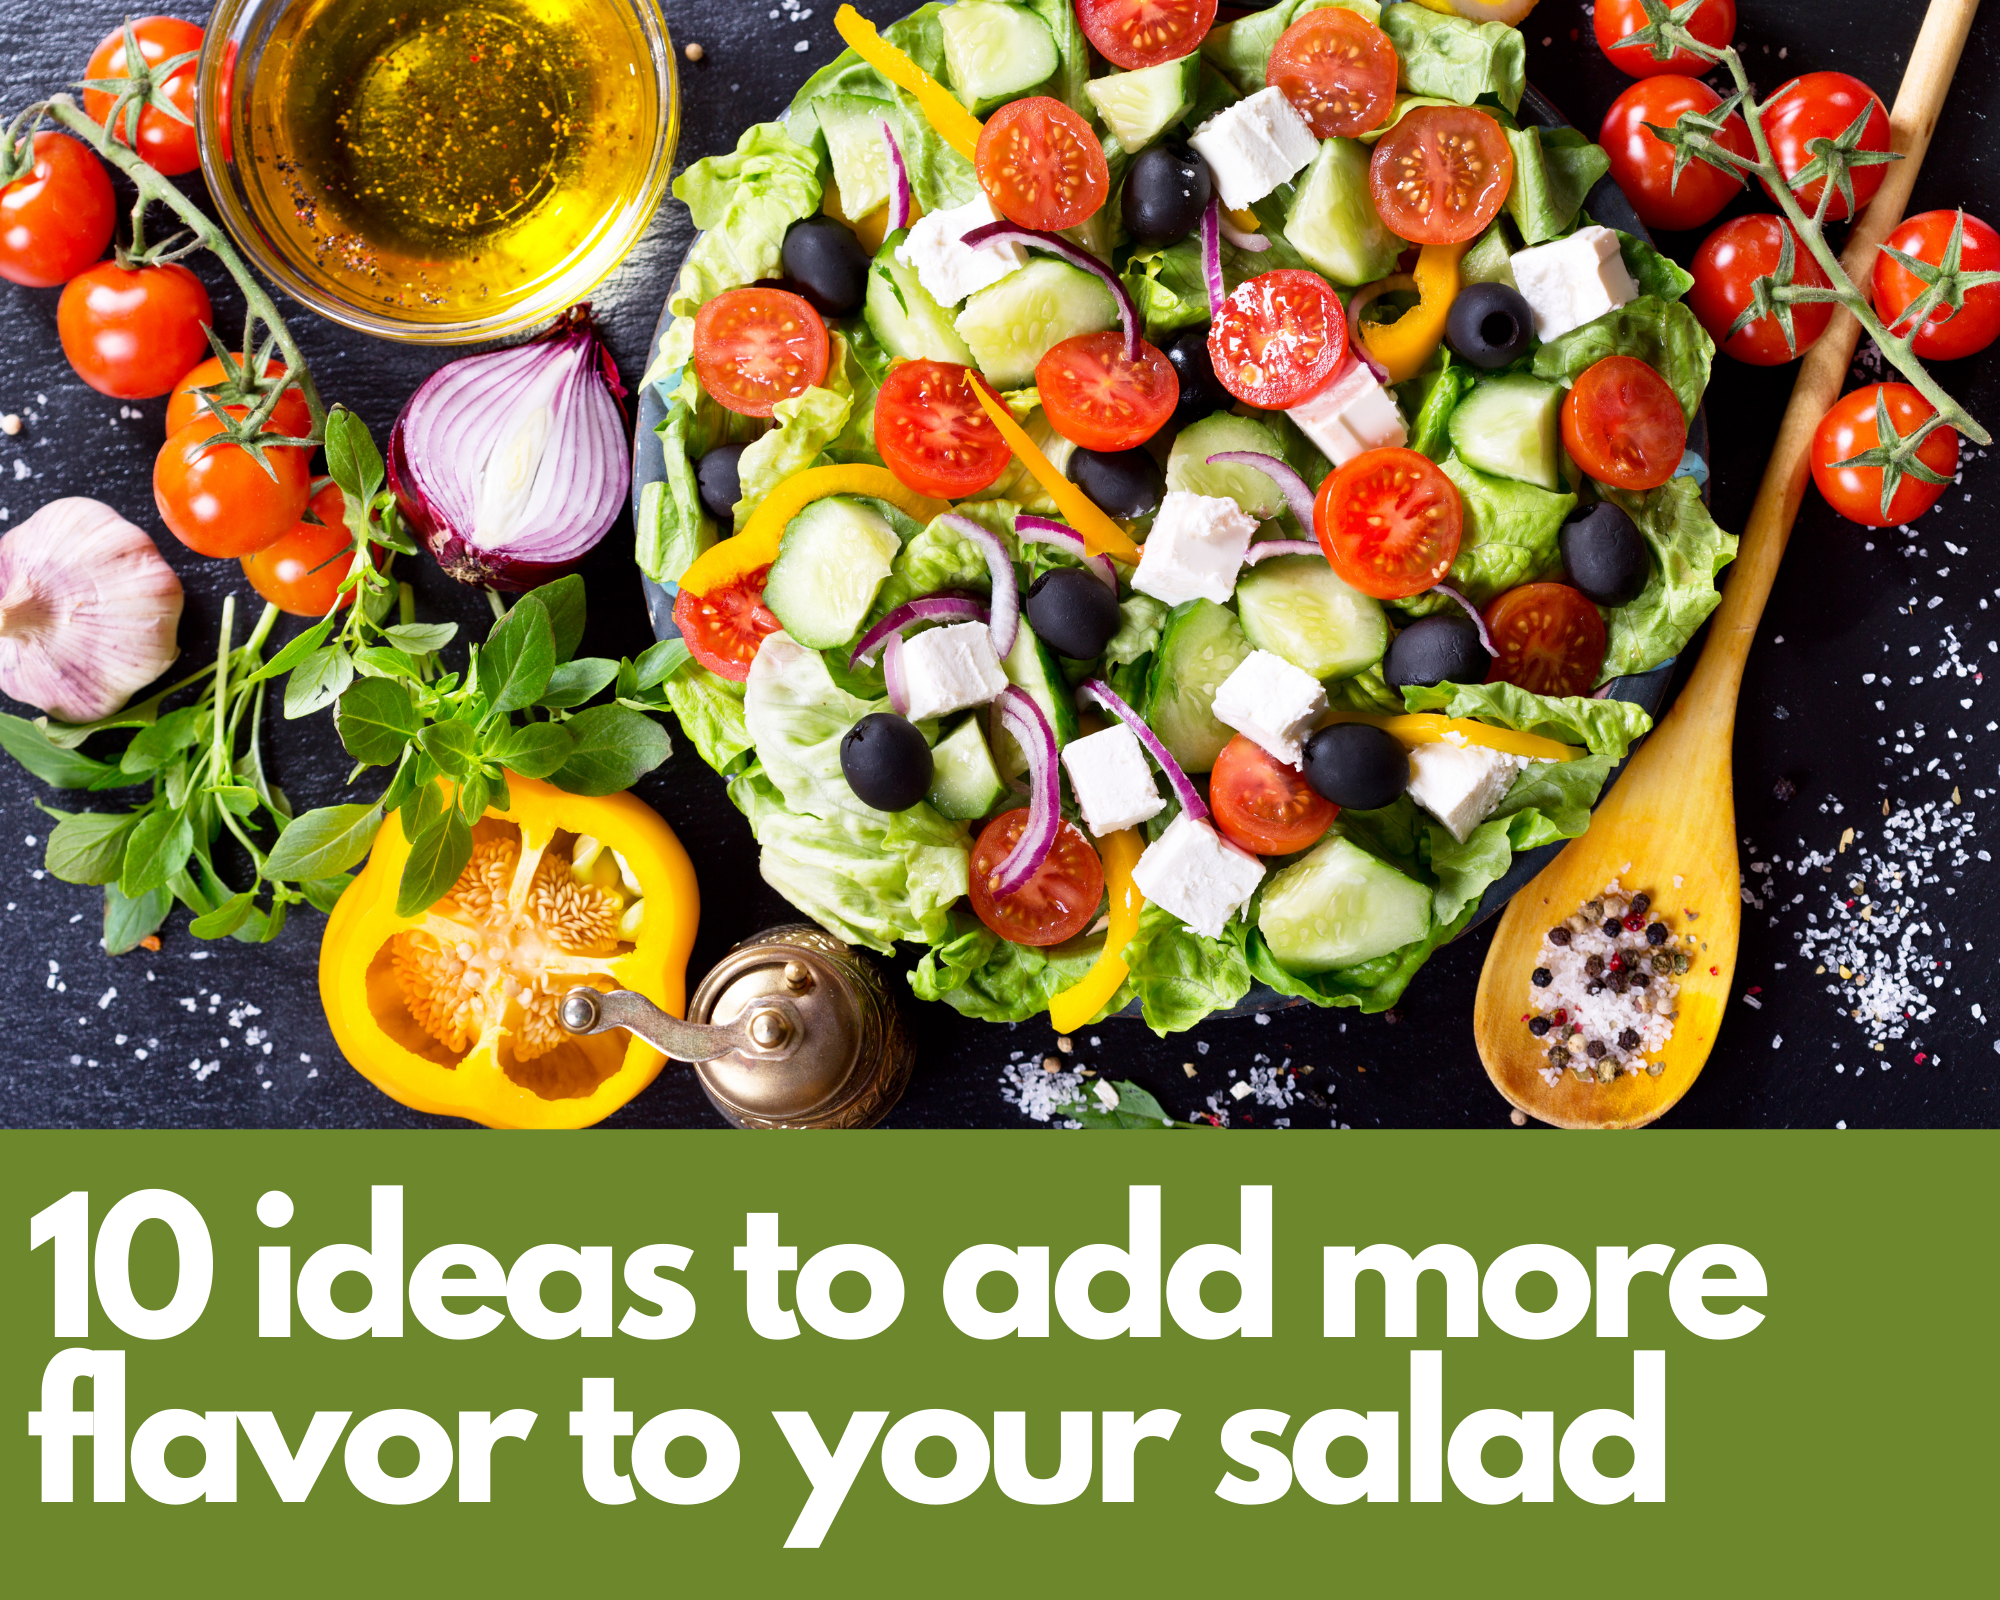 flavorful salad ideas